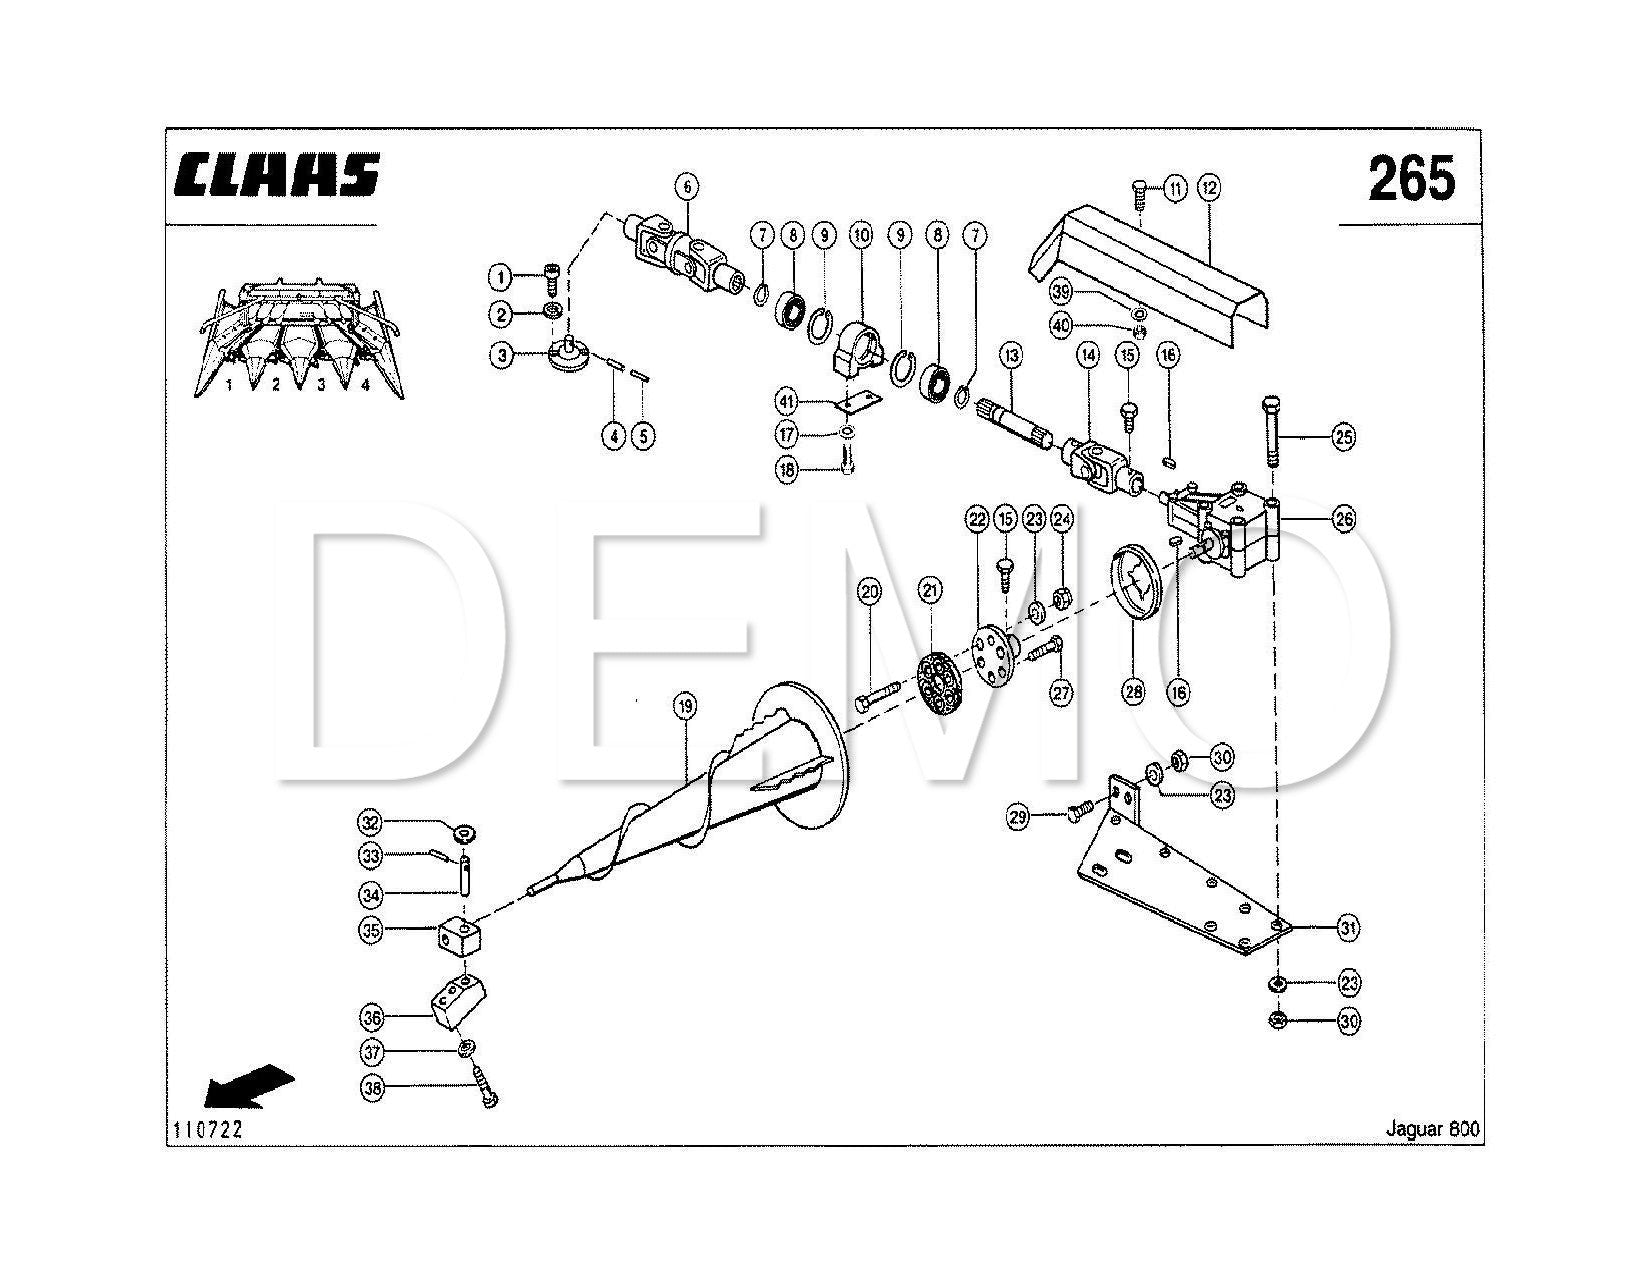 Claas Jaguar 860 Parts Catalogue, Spares List, Manual PDF